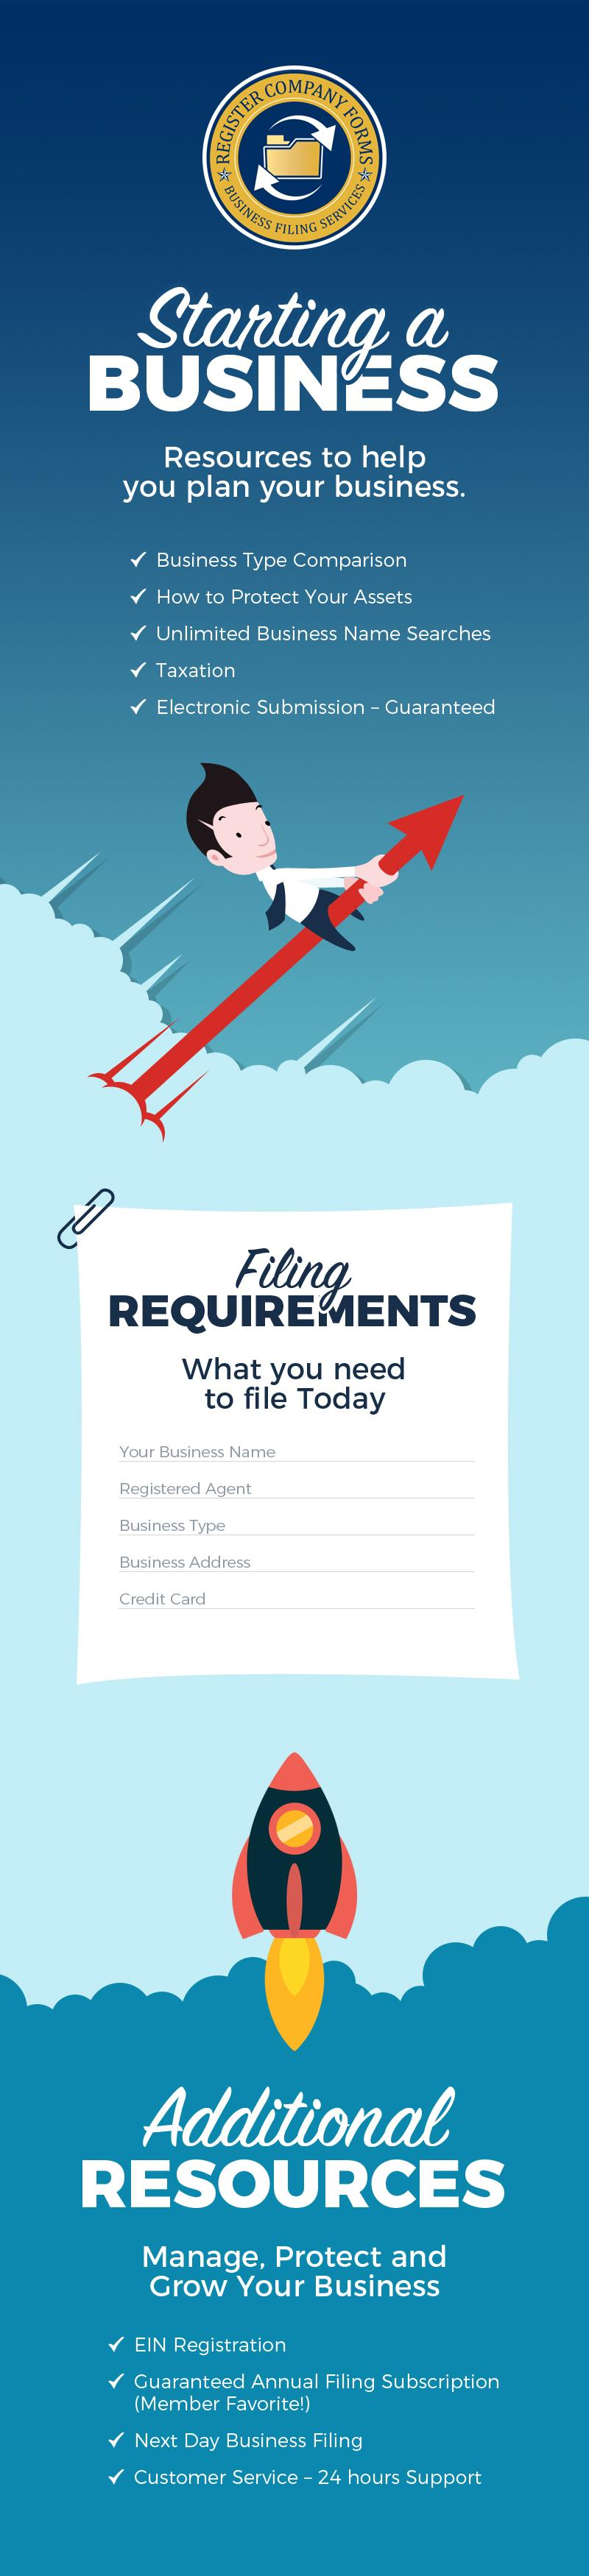 Register Company Forms - Best Resource to Start Your New Business